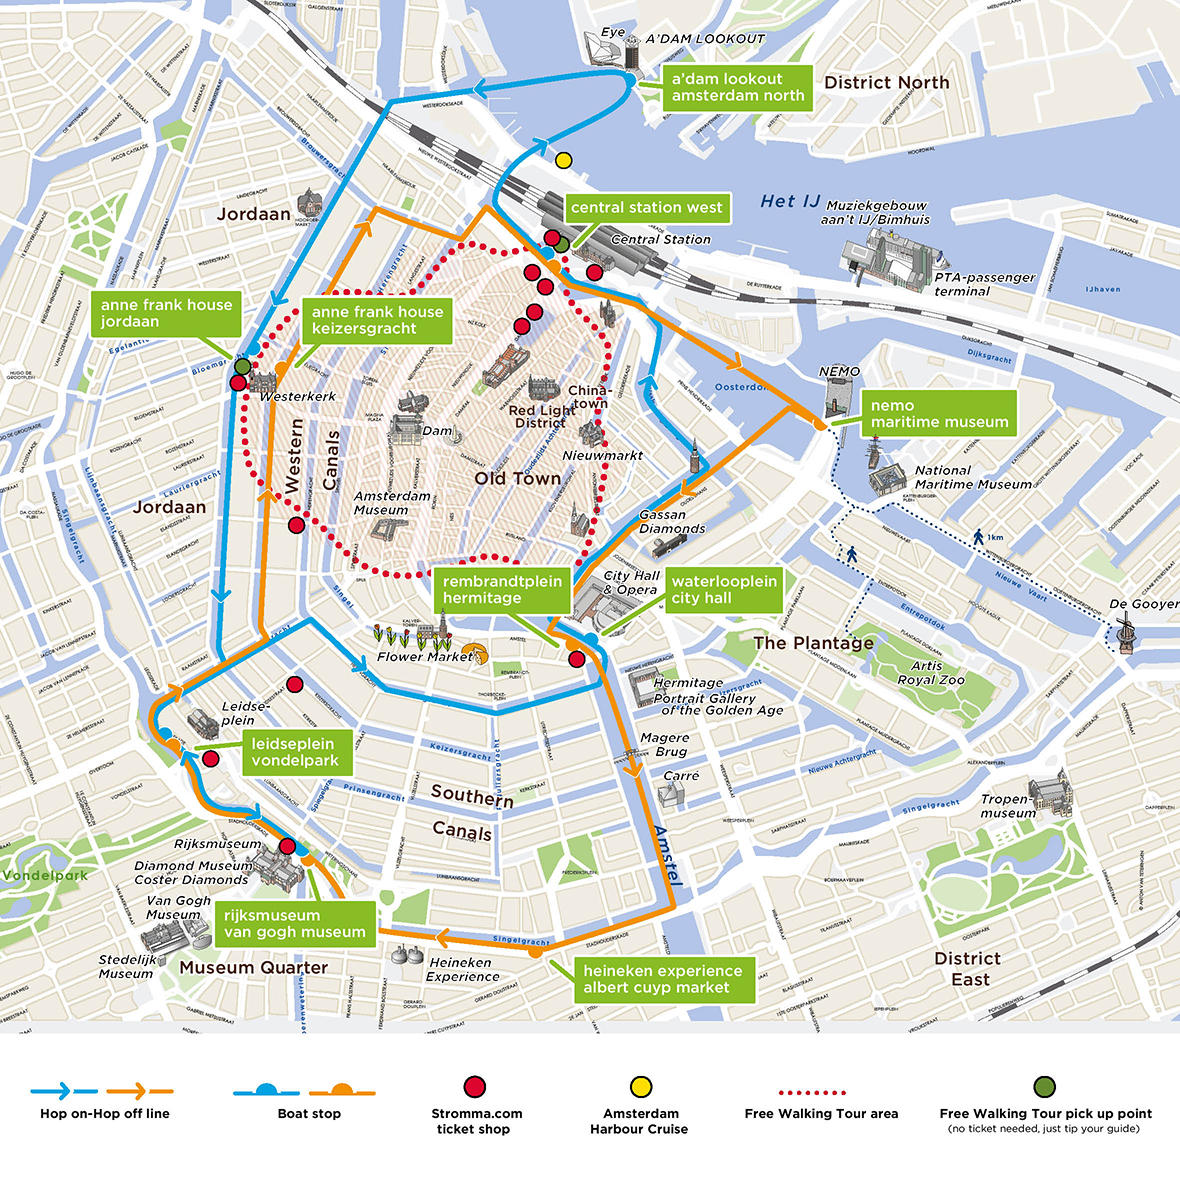 Map of Van Gogh Museum Entrance Ticket and Amsterdam Hop-On Hop-Off Boat Day Pass